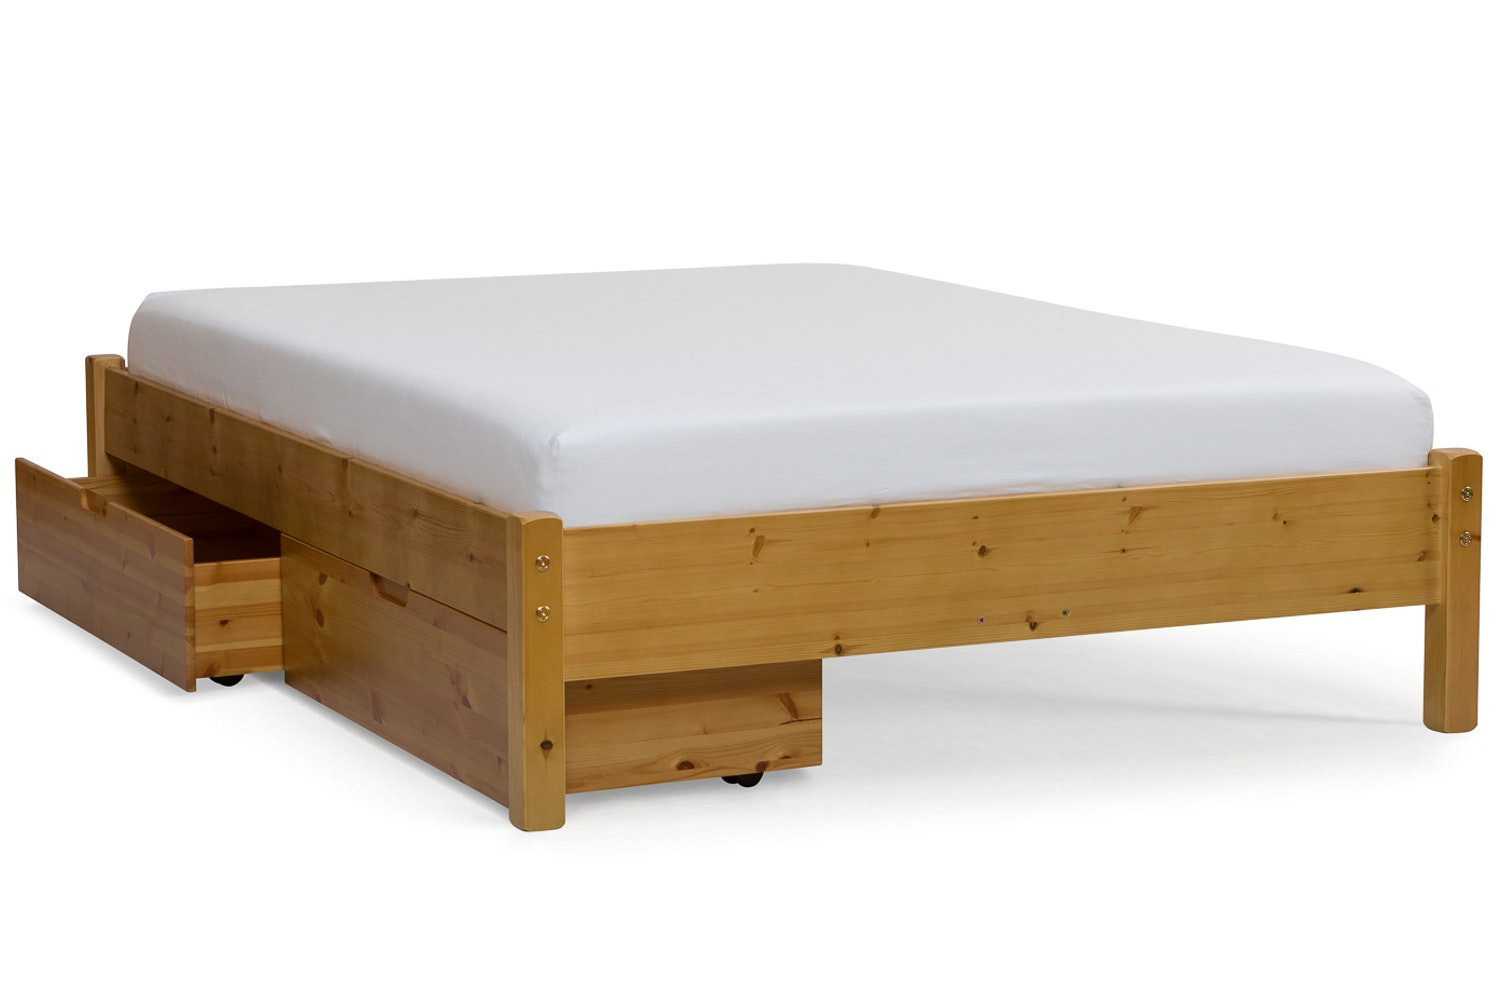 Emily Loft Bed Frame with Underbed Drawers | 4ft | Natural